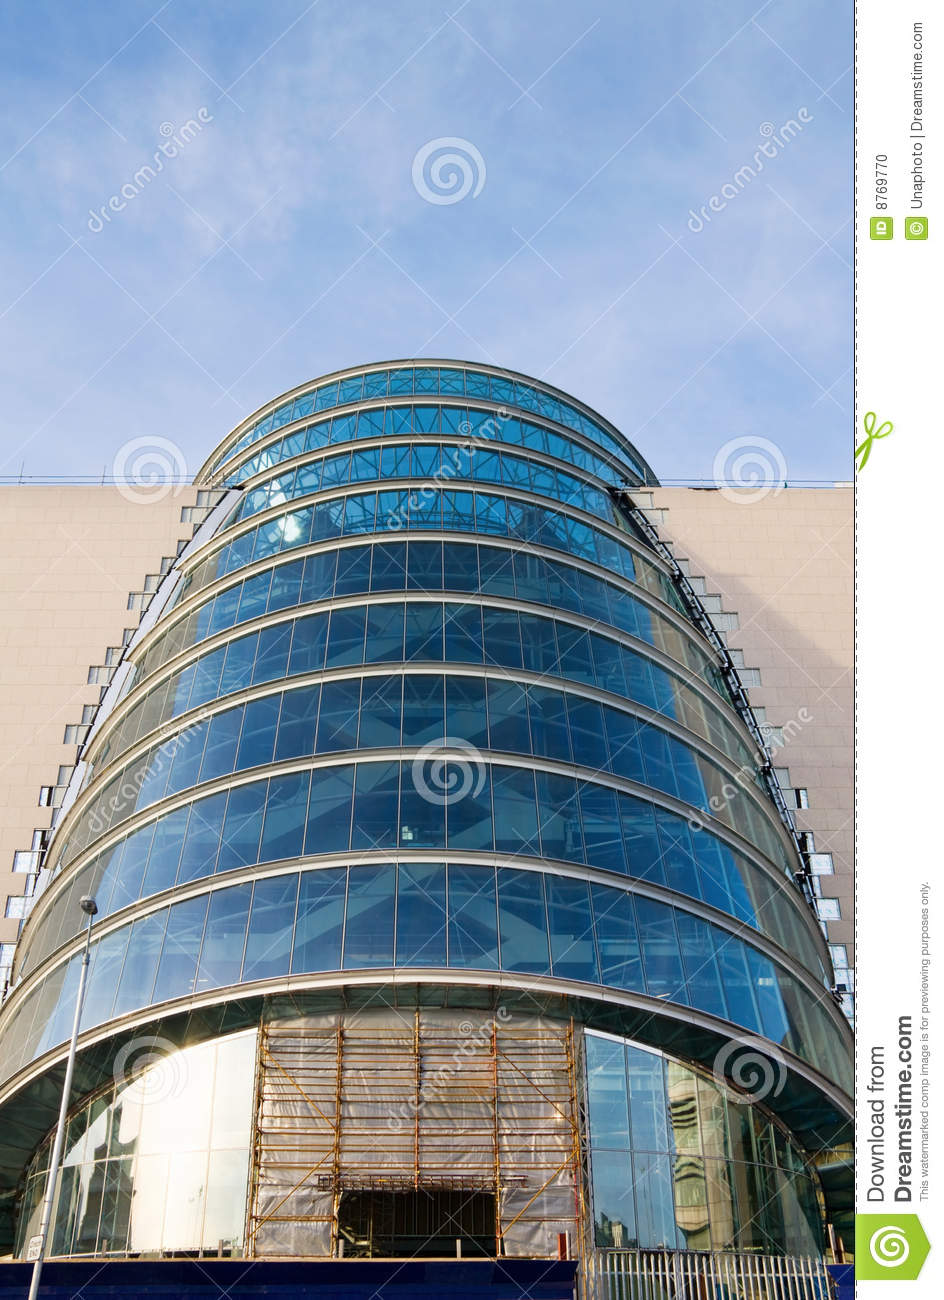 Building The Future With Modern Architecture Stock Photo ...